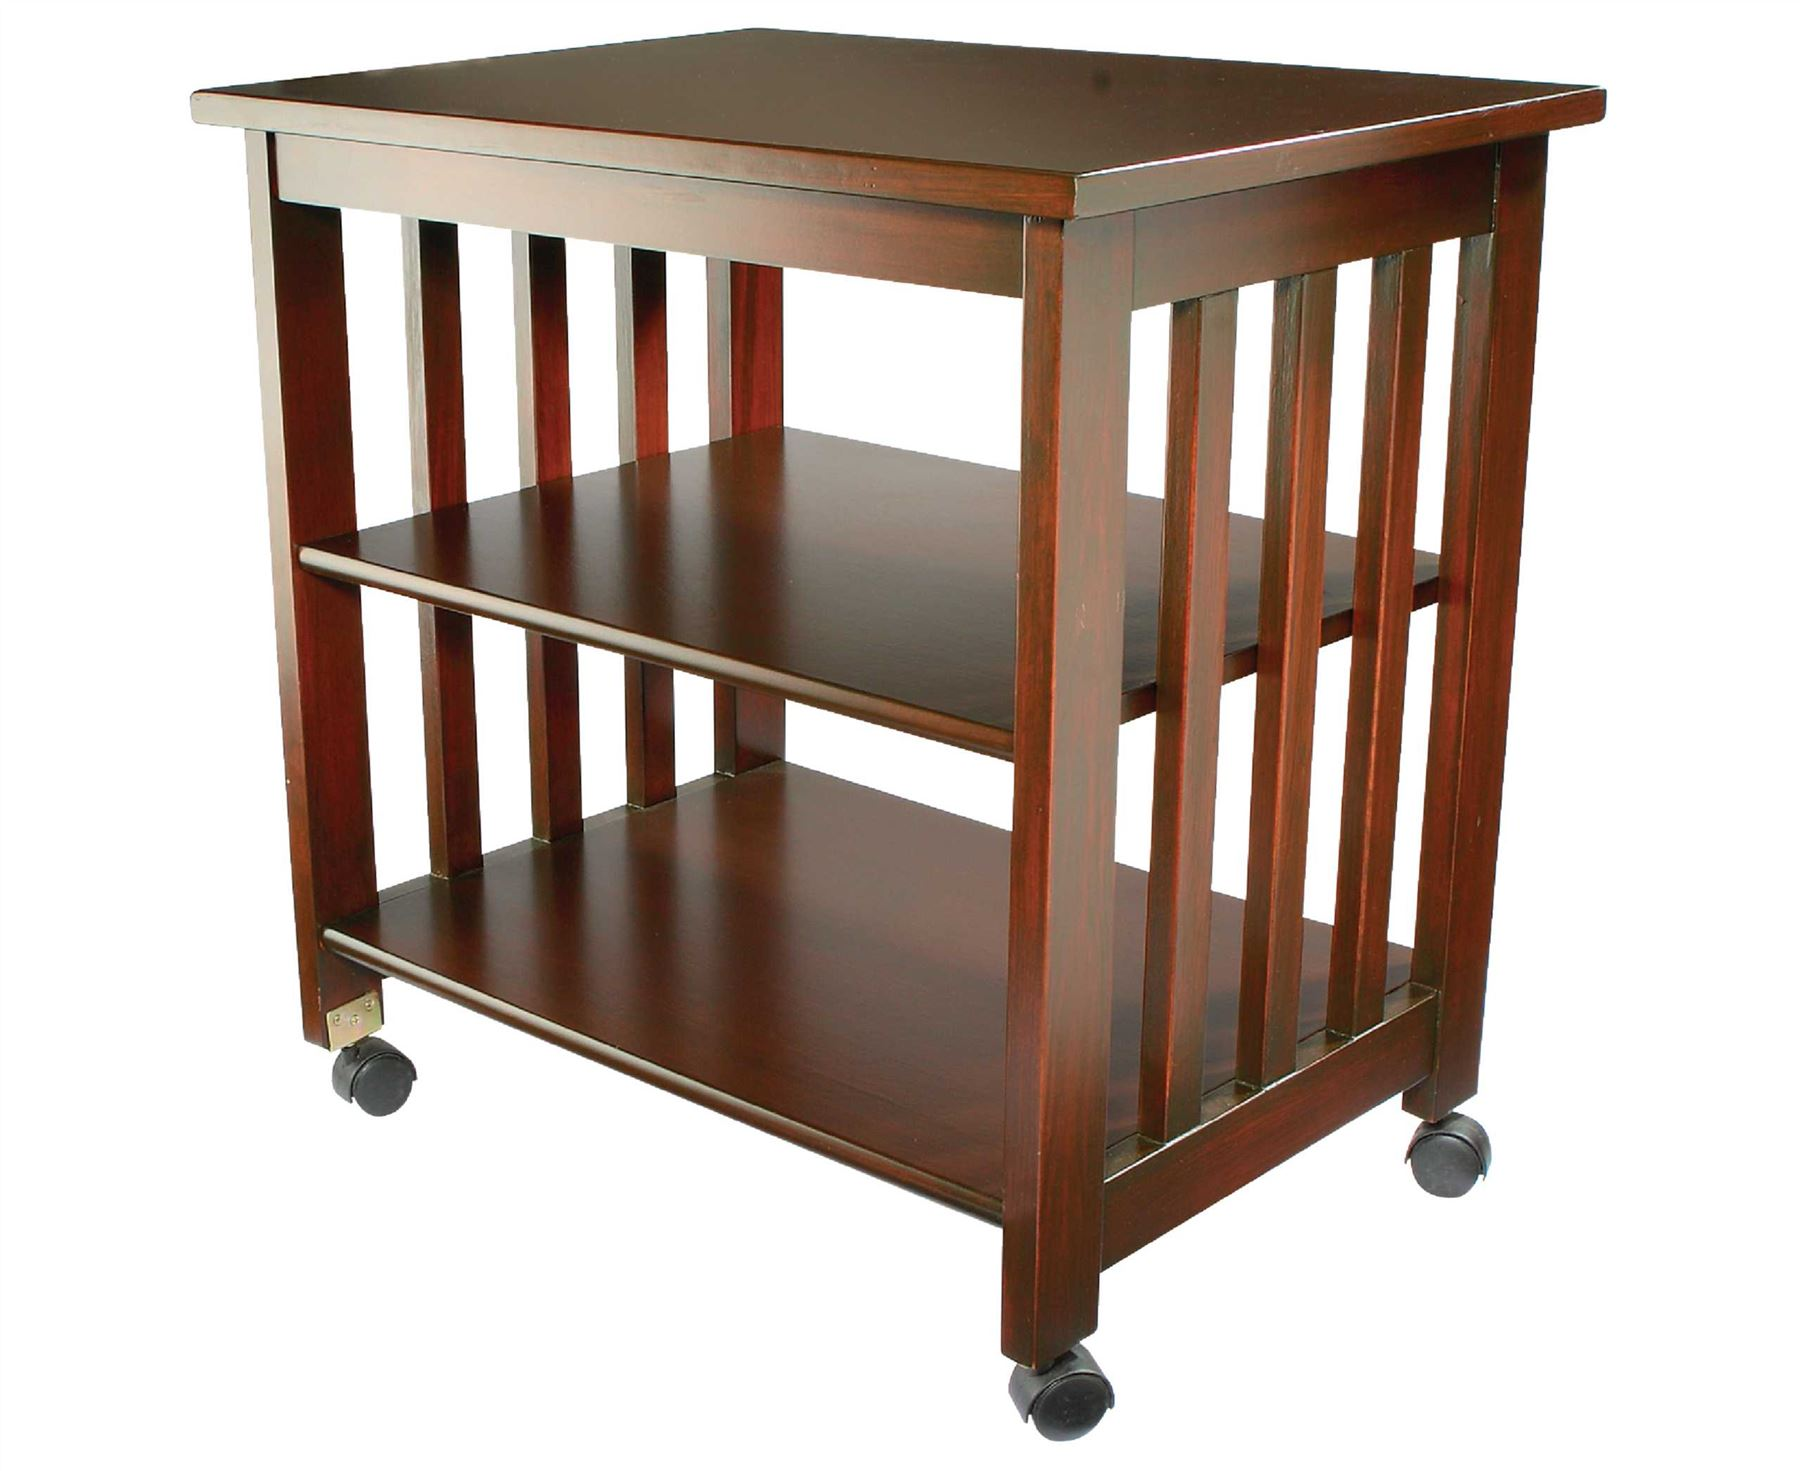 Very Impressive portraiture of Wheeled Storage Wood Finish Table Wheels Side Portable Shelves Printer  with #A0492B color and 1800x1471 pixels